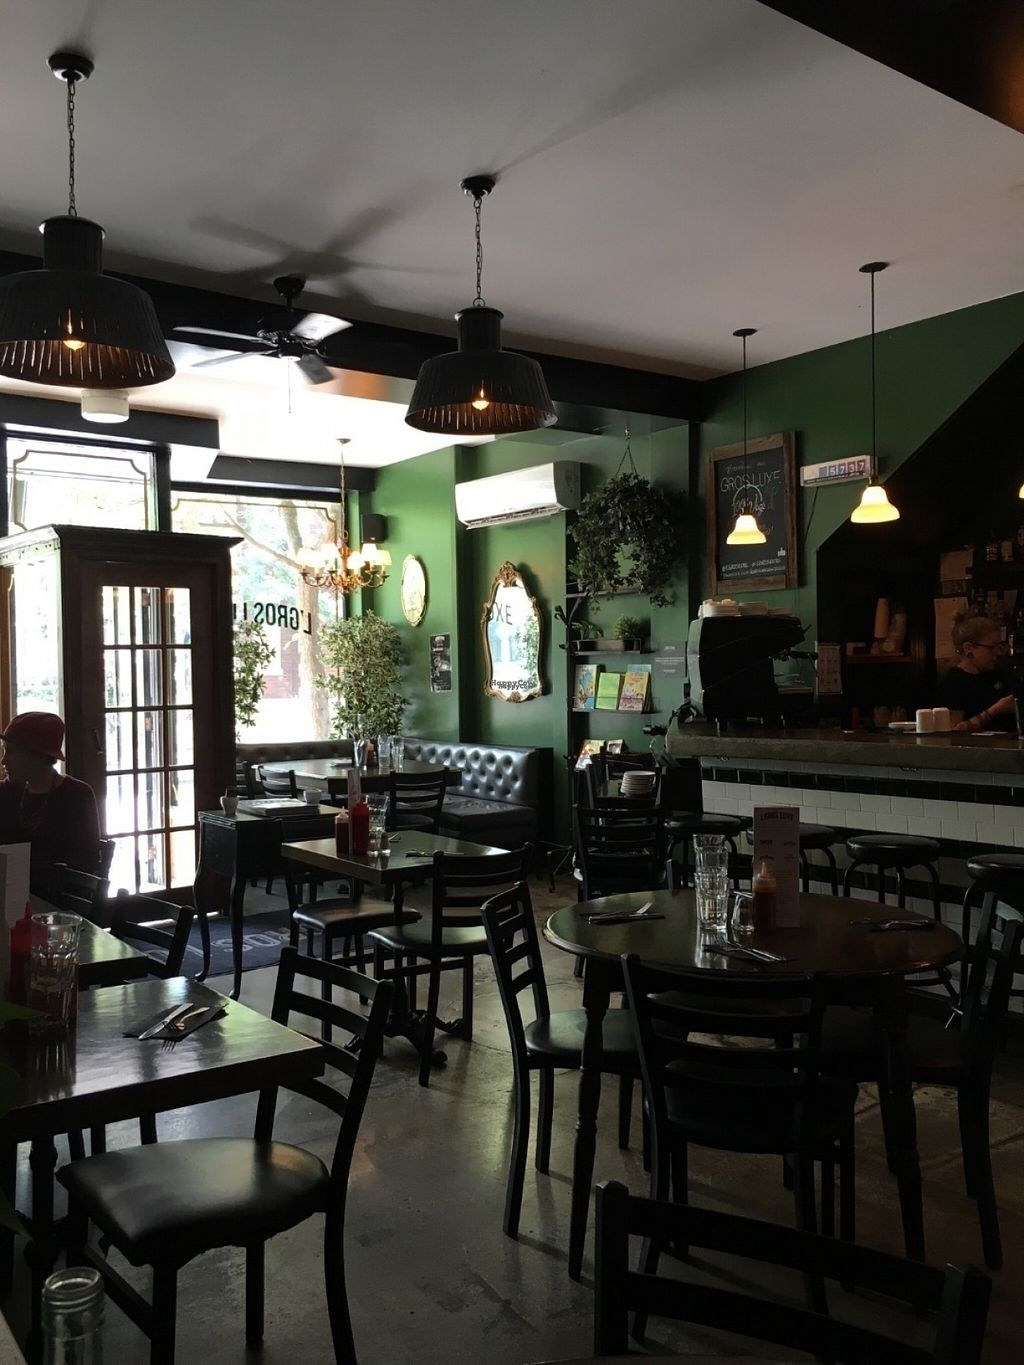 """Photo of CLOSED: L'Gros Luxe 100% Vege  by <a href=""""/members/profile/Veganikismyname"""">Veganikismyname</a> <br/>Adorable decor and great ambiance <br/> August 23, 2016  - <a href='/contact/abuse/image/75664/170855'>Report</a>"""